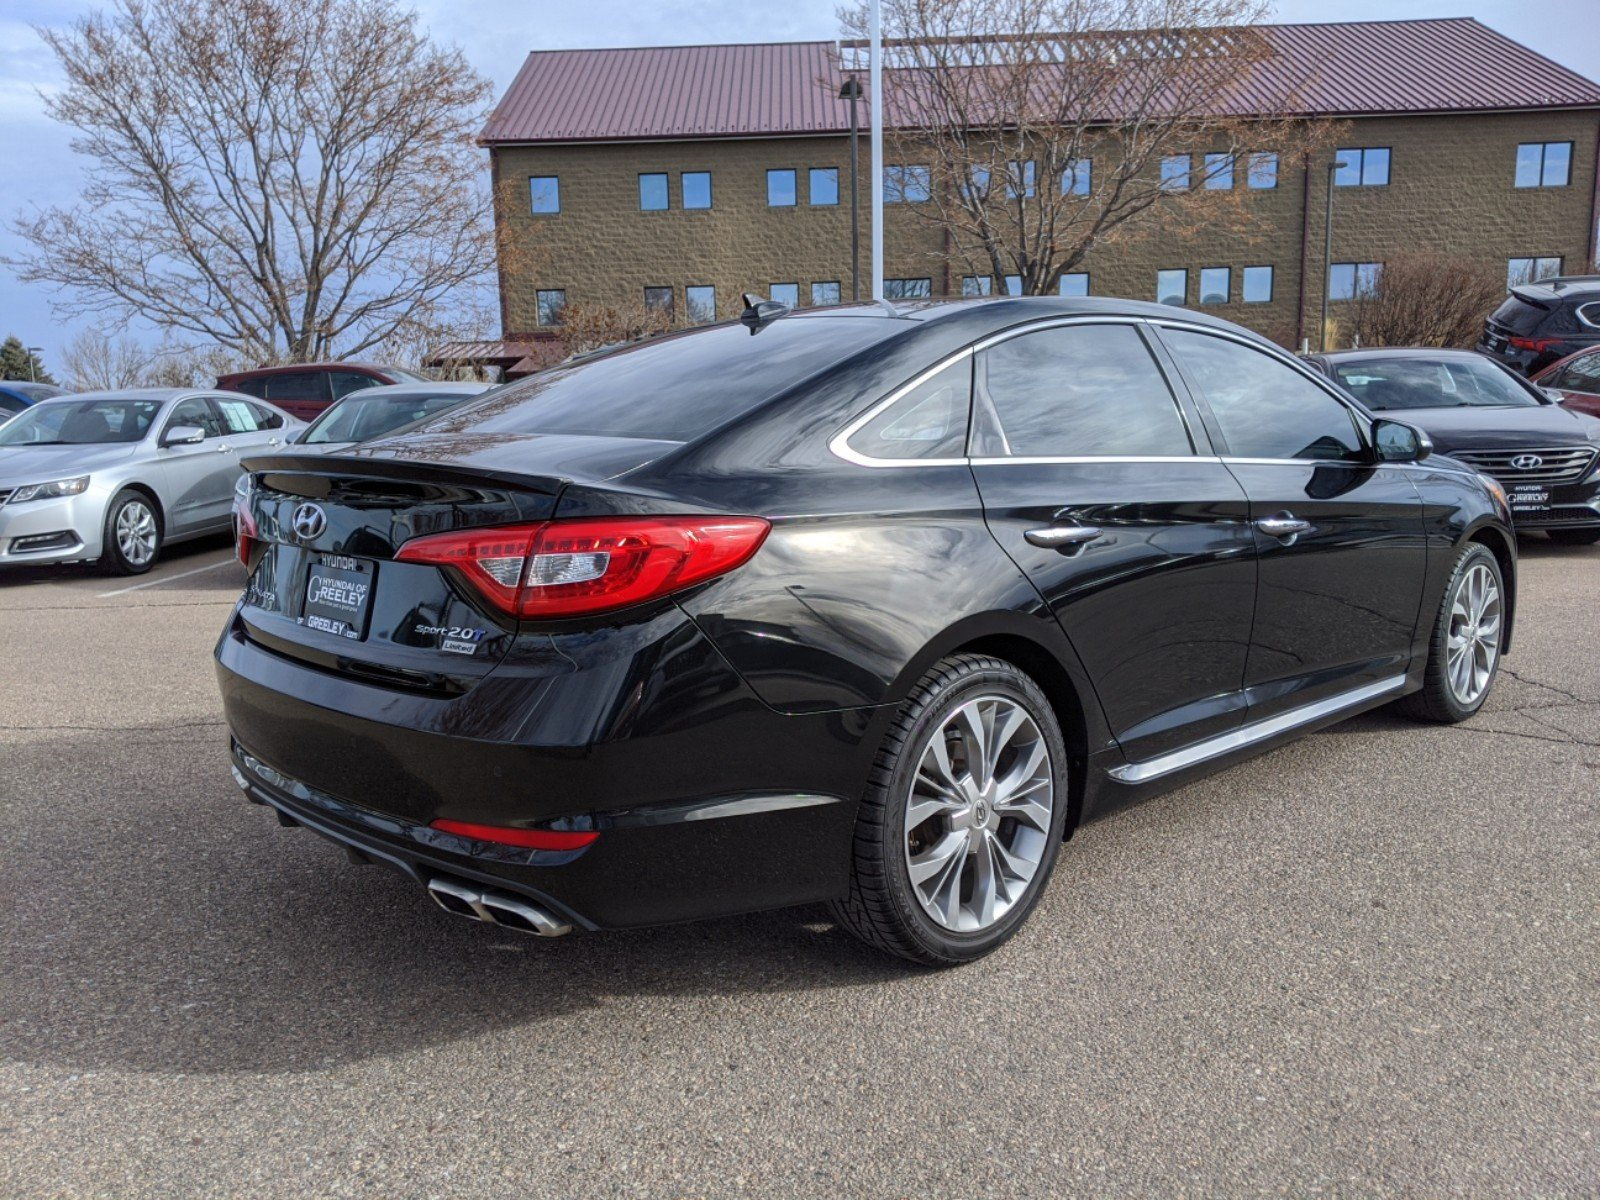 Hyundai Of Greeley >> Pre-Owned 2015 Hyundai Sonata 2.0T Limited 4dr Car in Greeley #20Y165A | Honda of Greeley